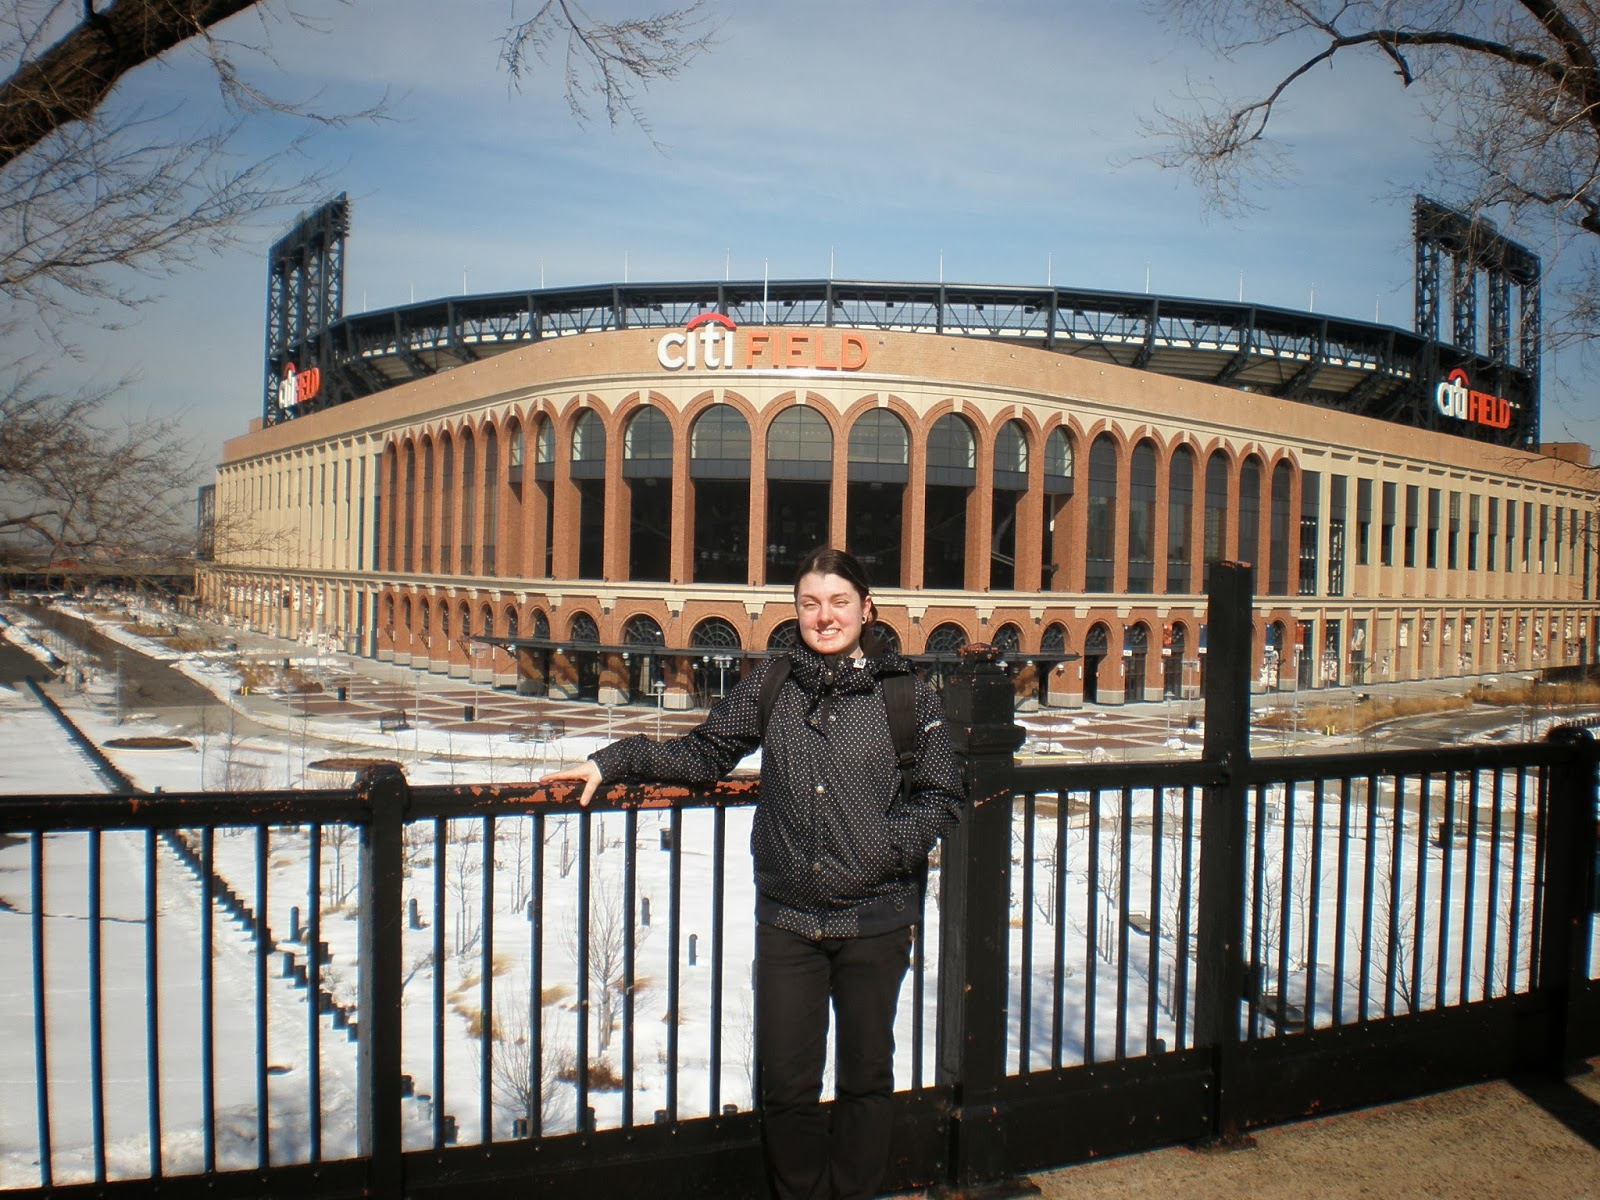 citi field, mets, flushing, queens, shea, NYC, New York, 10 free things to do, free things to do in NYC, travel, New York, explore, adventures, photography, usa, tourism, tourists,